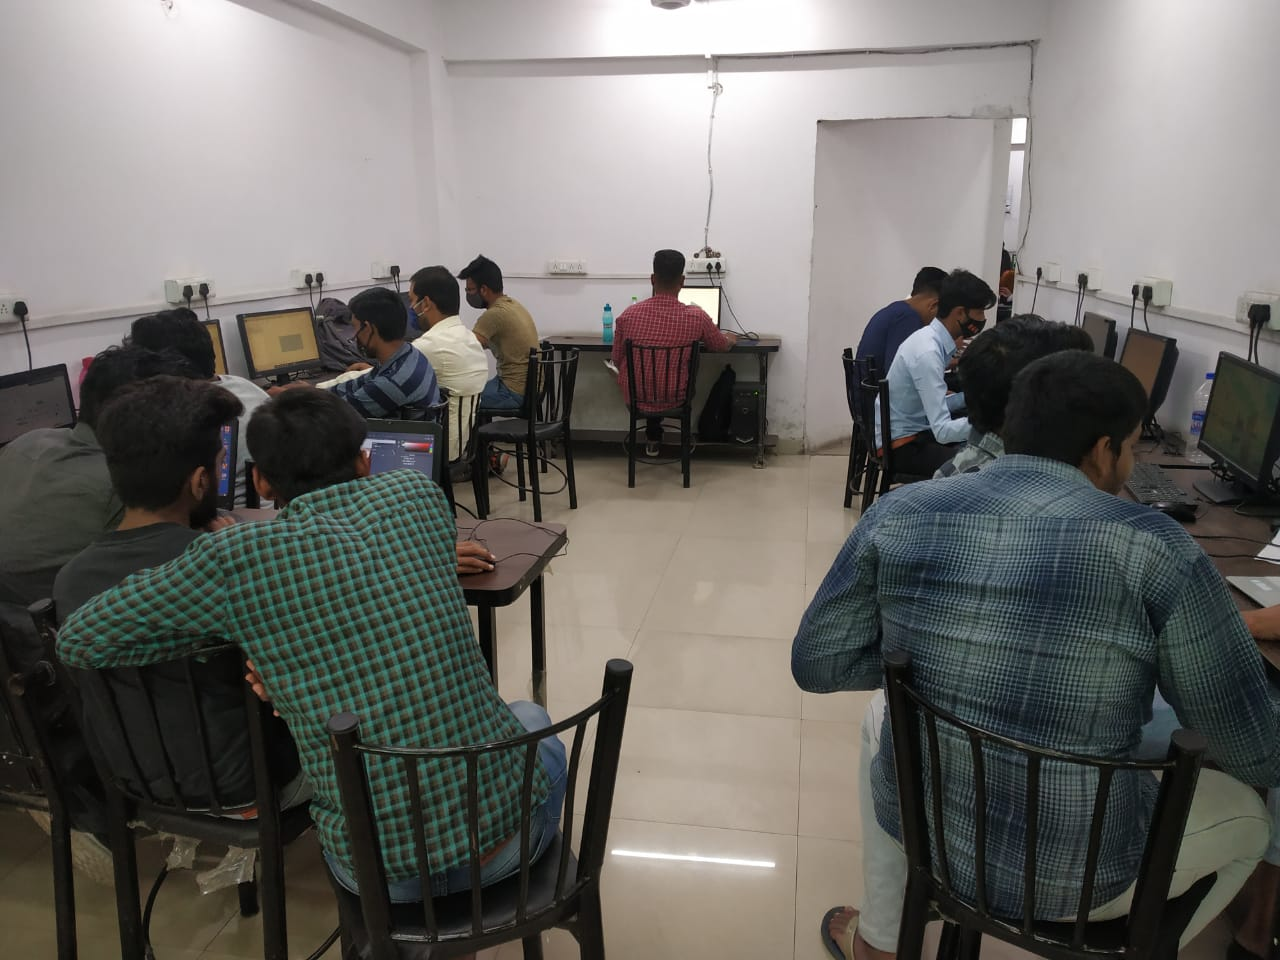 design-centre-institute-of-creativity-and-innovation-indore-chhindwara-gallery (23)